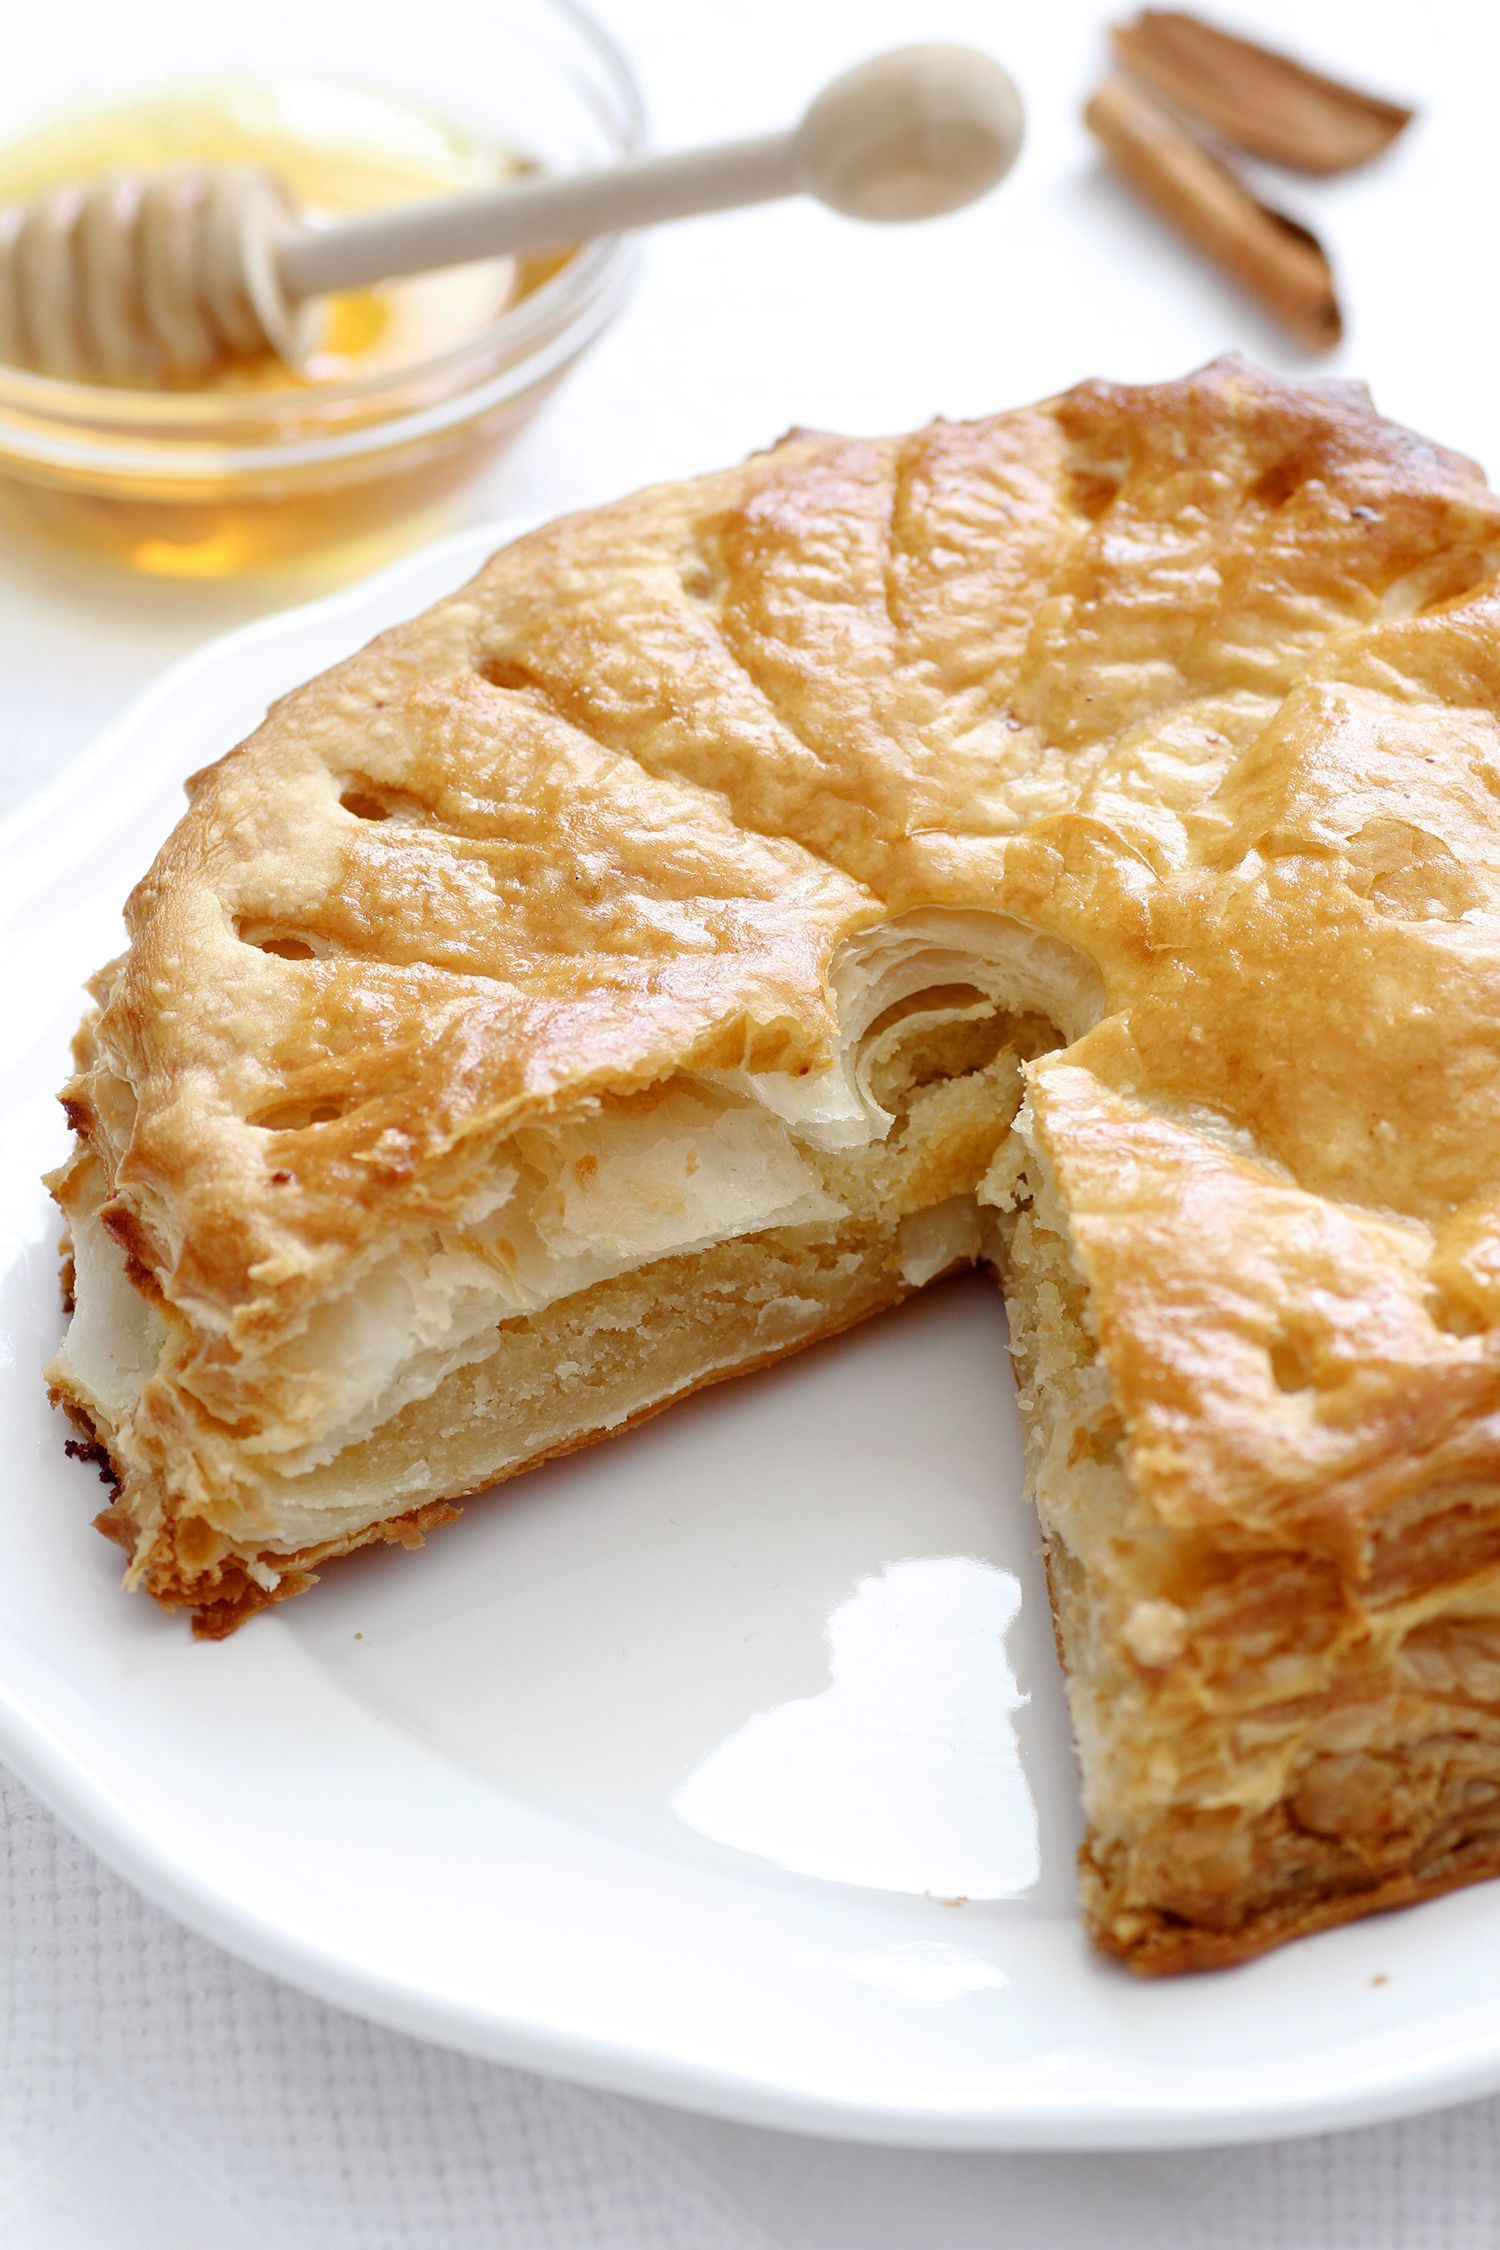 Galette des Rois - The King's Cake